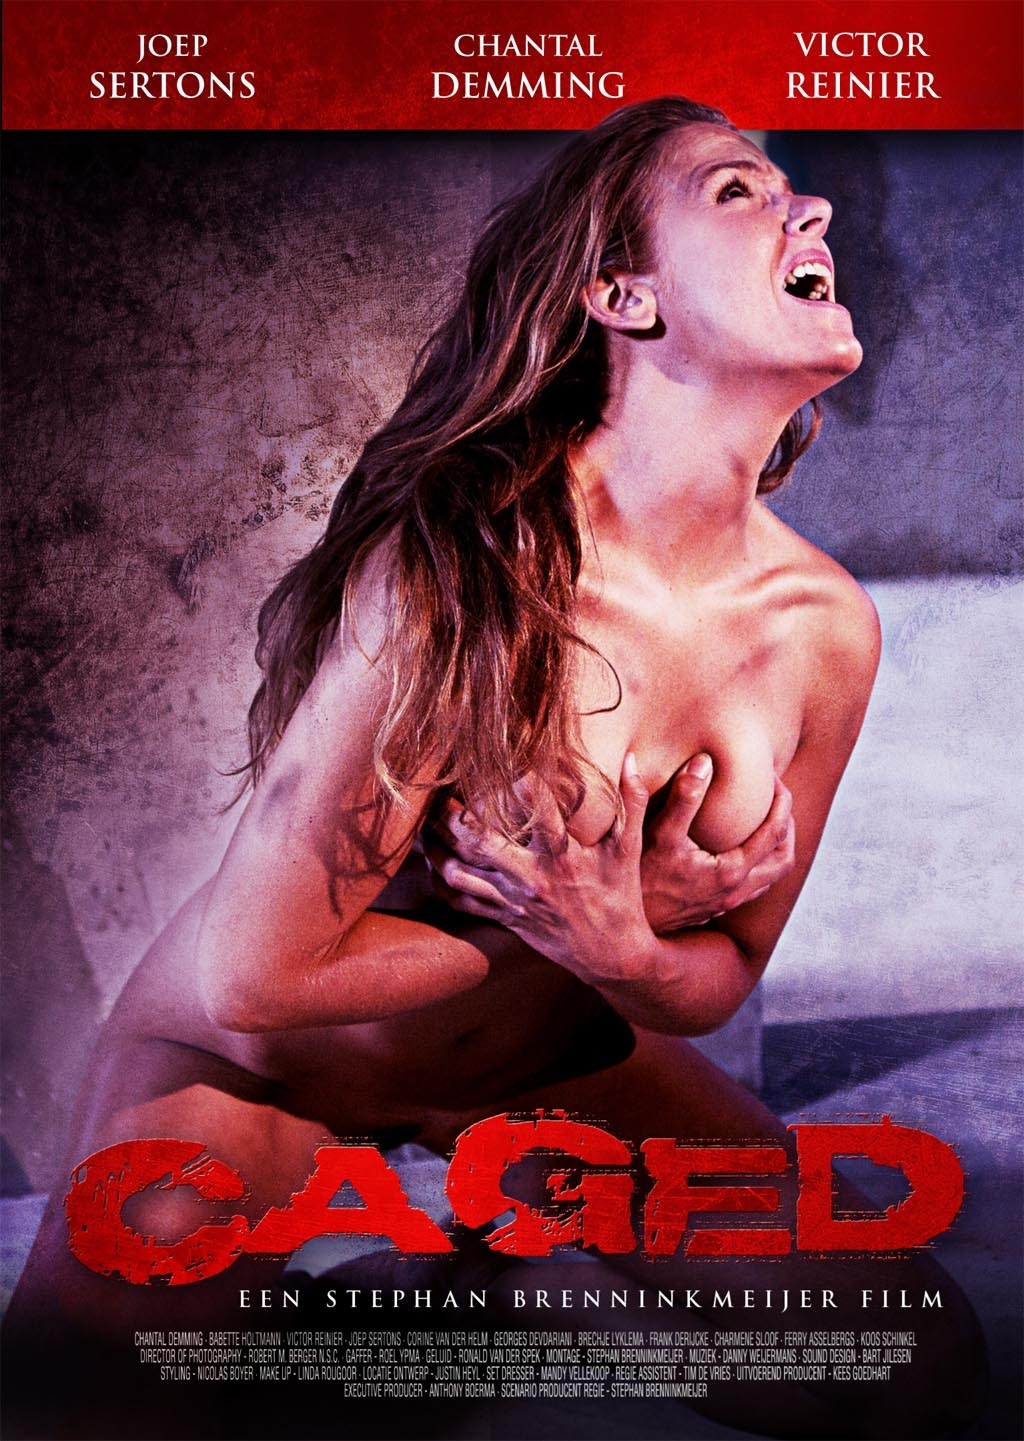 Caged chantal demming 2011 sex scene - 2 part 6